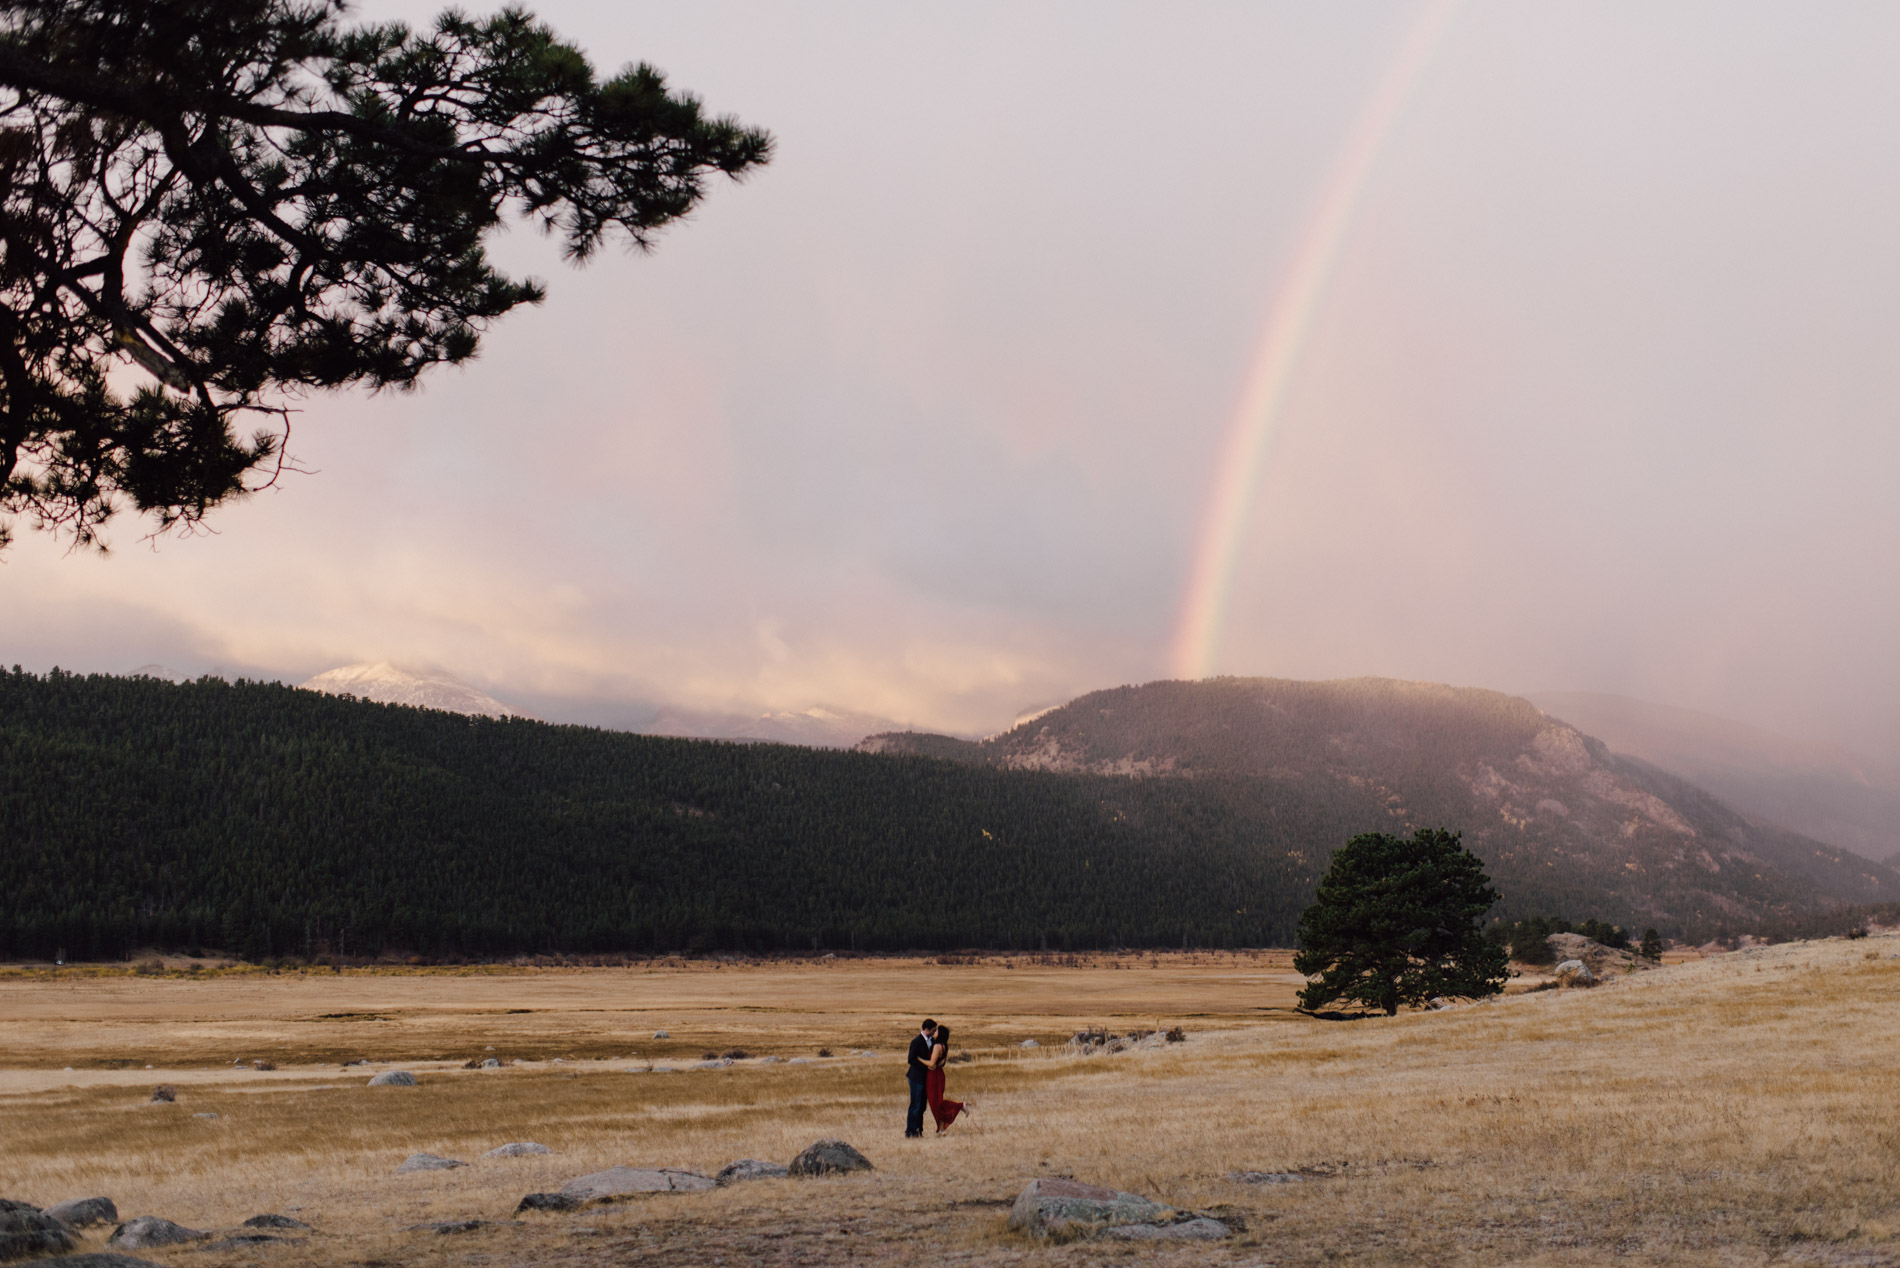 Rocky-Mountain-Elopement-Rocky-Mountain-National-Park-Photographer-Rocky-Mountain-National-Park-Photography-Rocky-Mountain-National-Park-Elopement-Rocky-Mountain-National-Park-Wedding-RMNP-Elopement-Colorado-Elopement-Colorado-Elopement-Photographer-Colorado-Elopement-Photography-rainbow-engagement-session-003